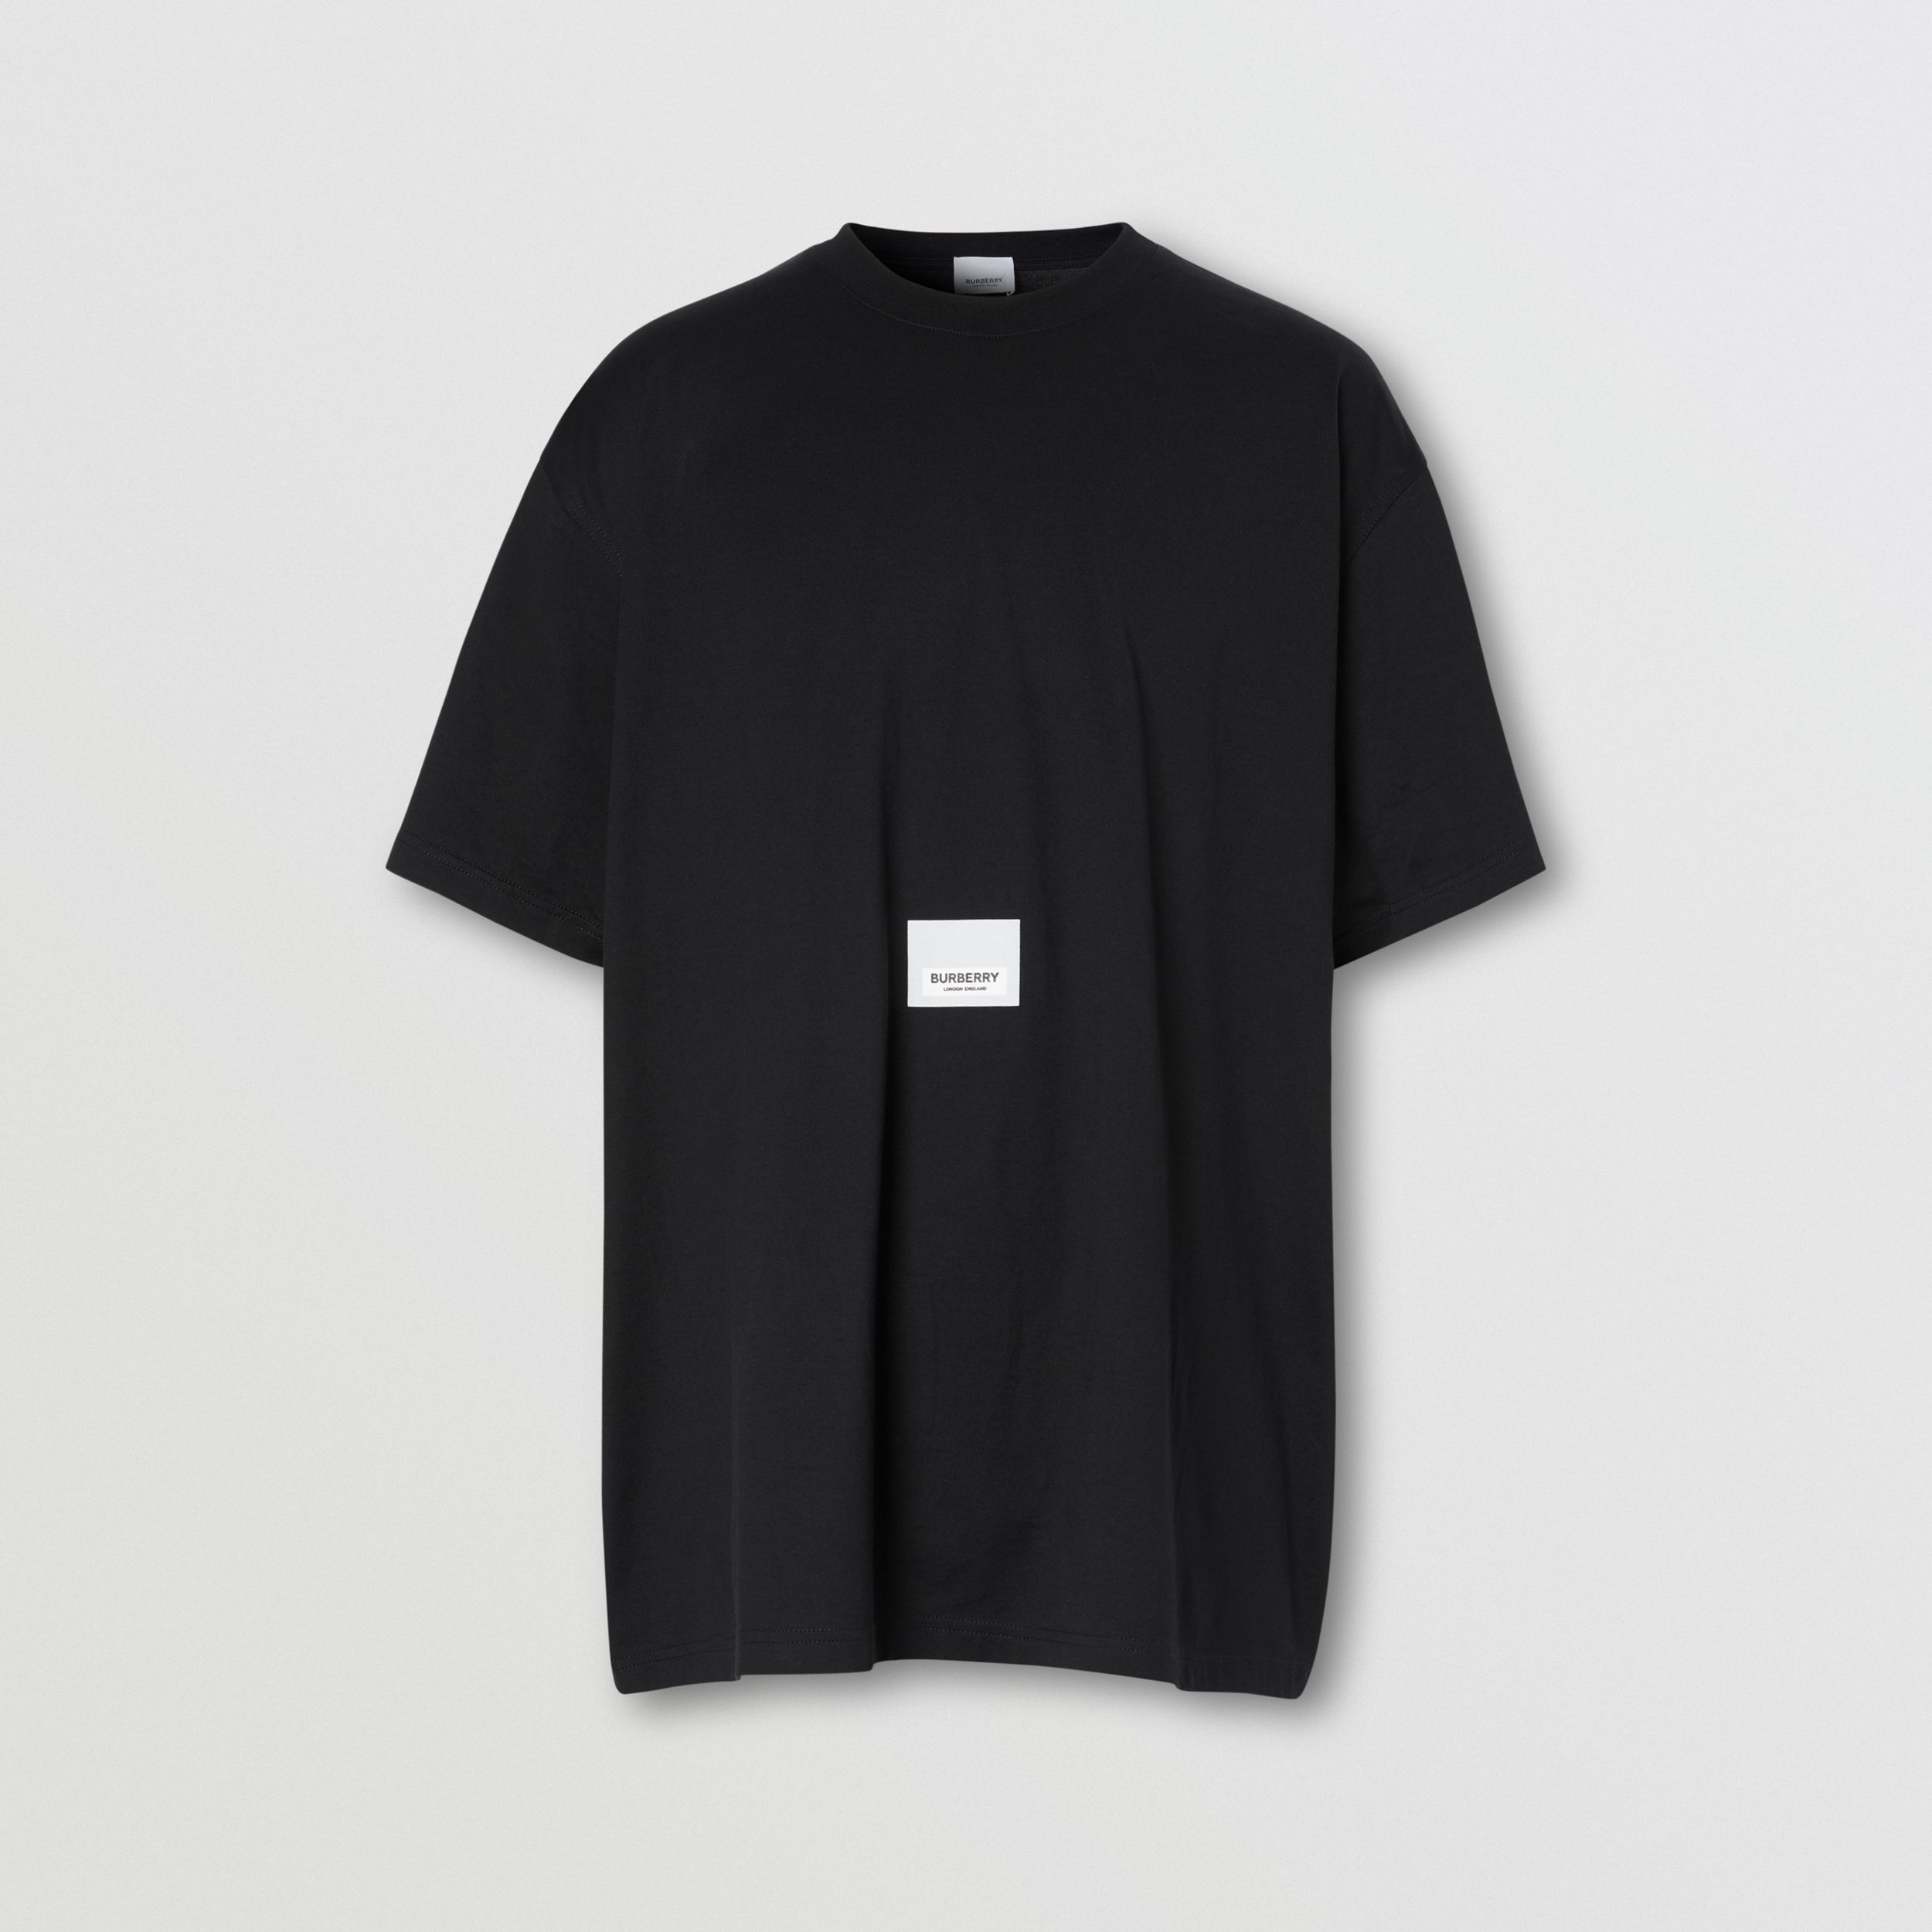 Logo Print Cotton T-shirt in Black - Men | Burberry - 4